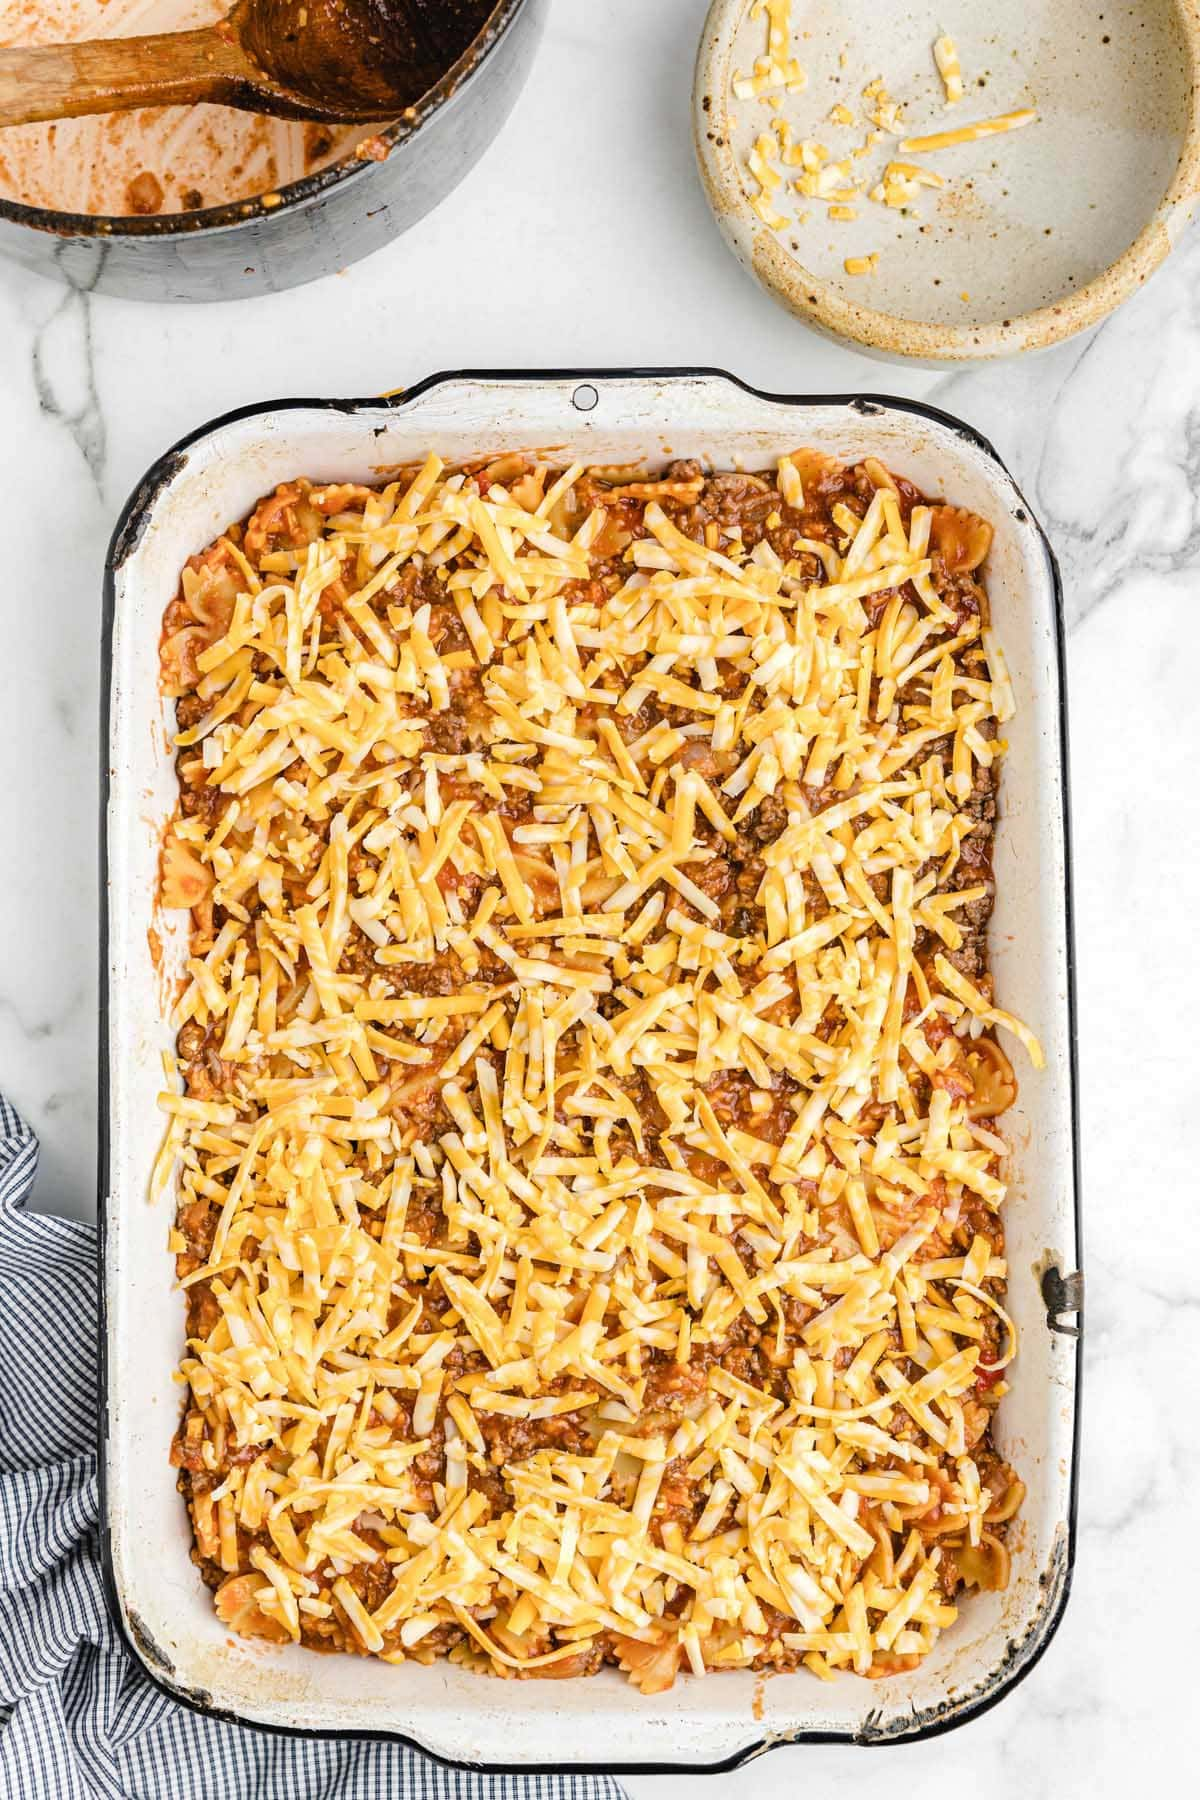 sprinkle cheese into the casserole